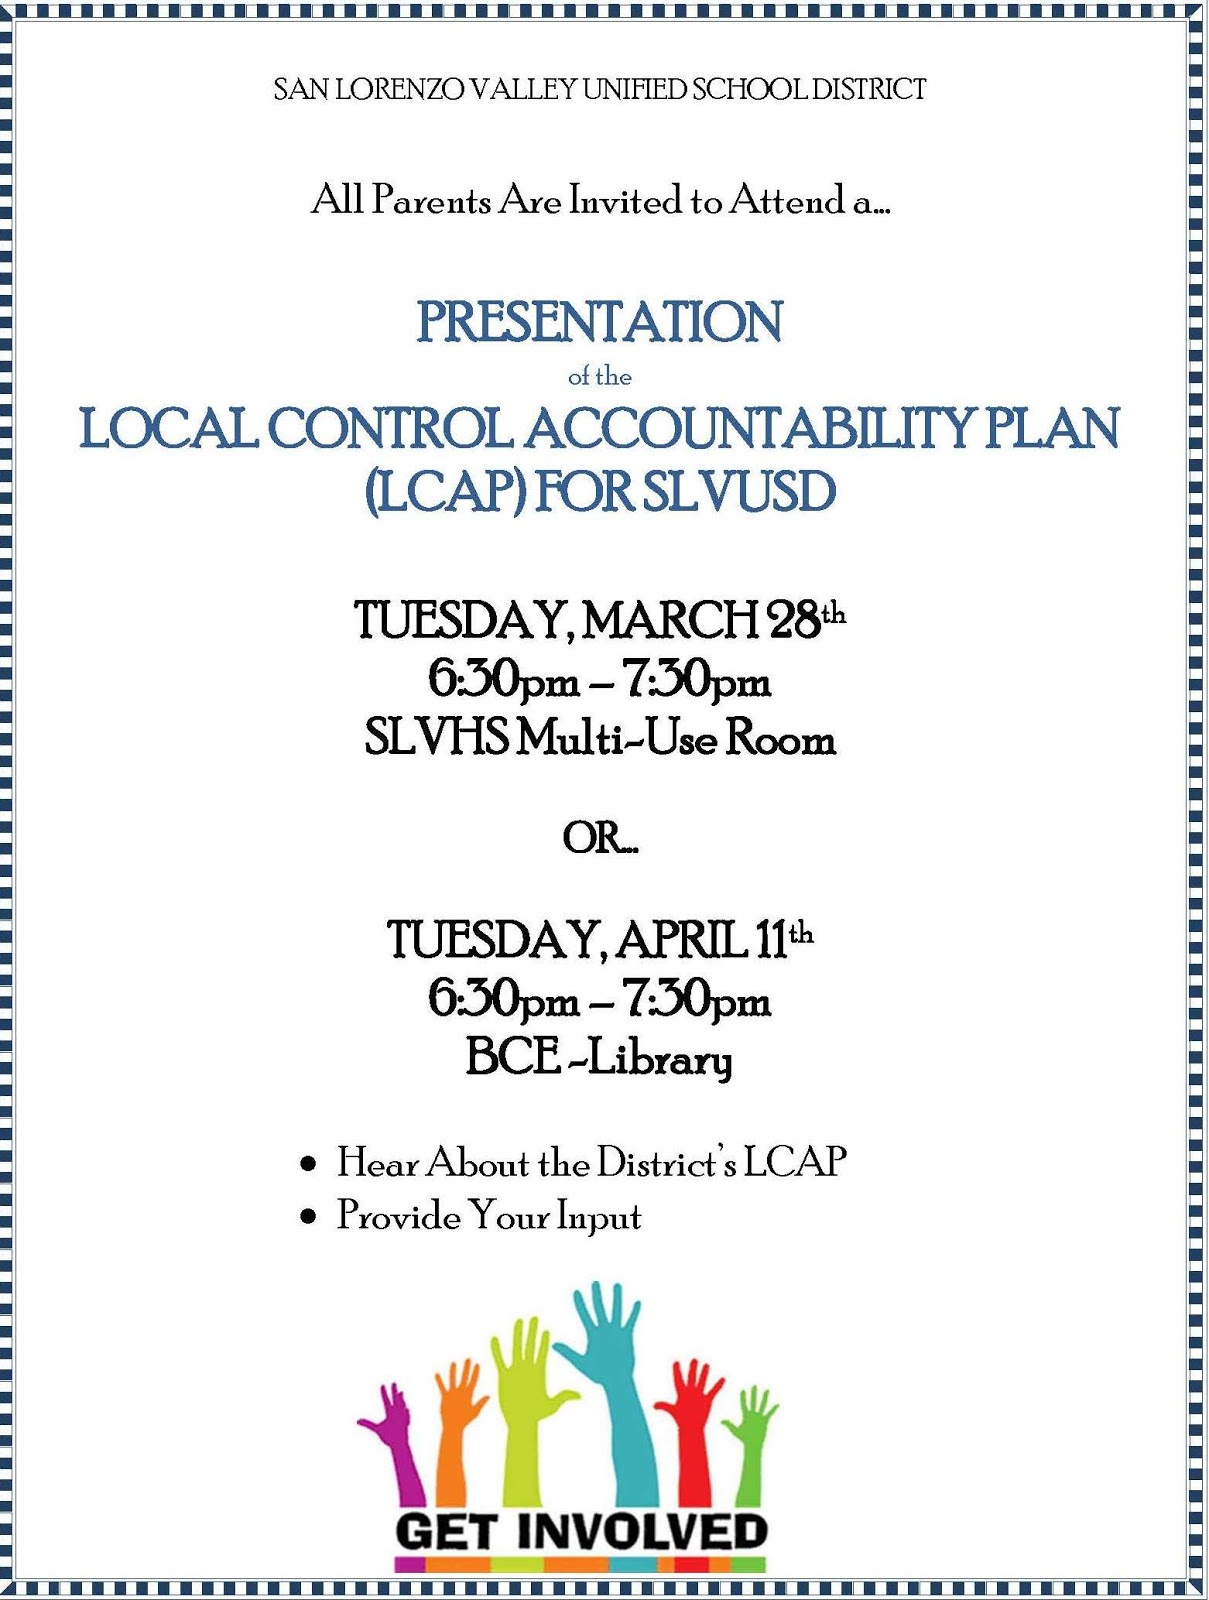 LCAP Meeting Flyer.jpg